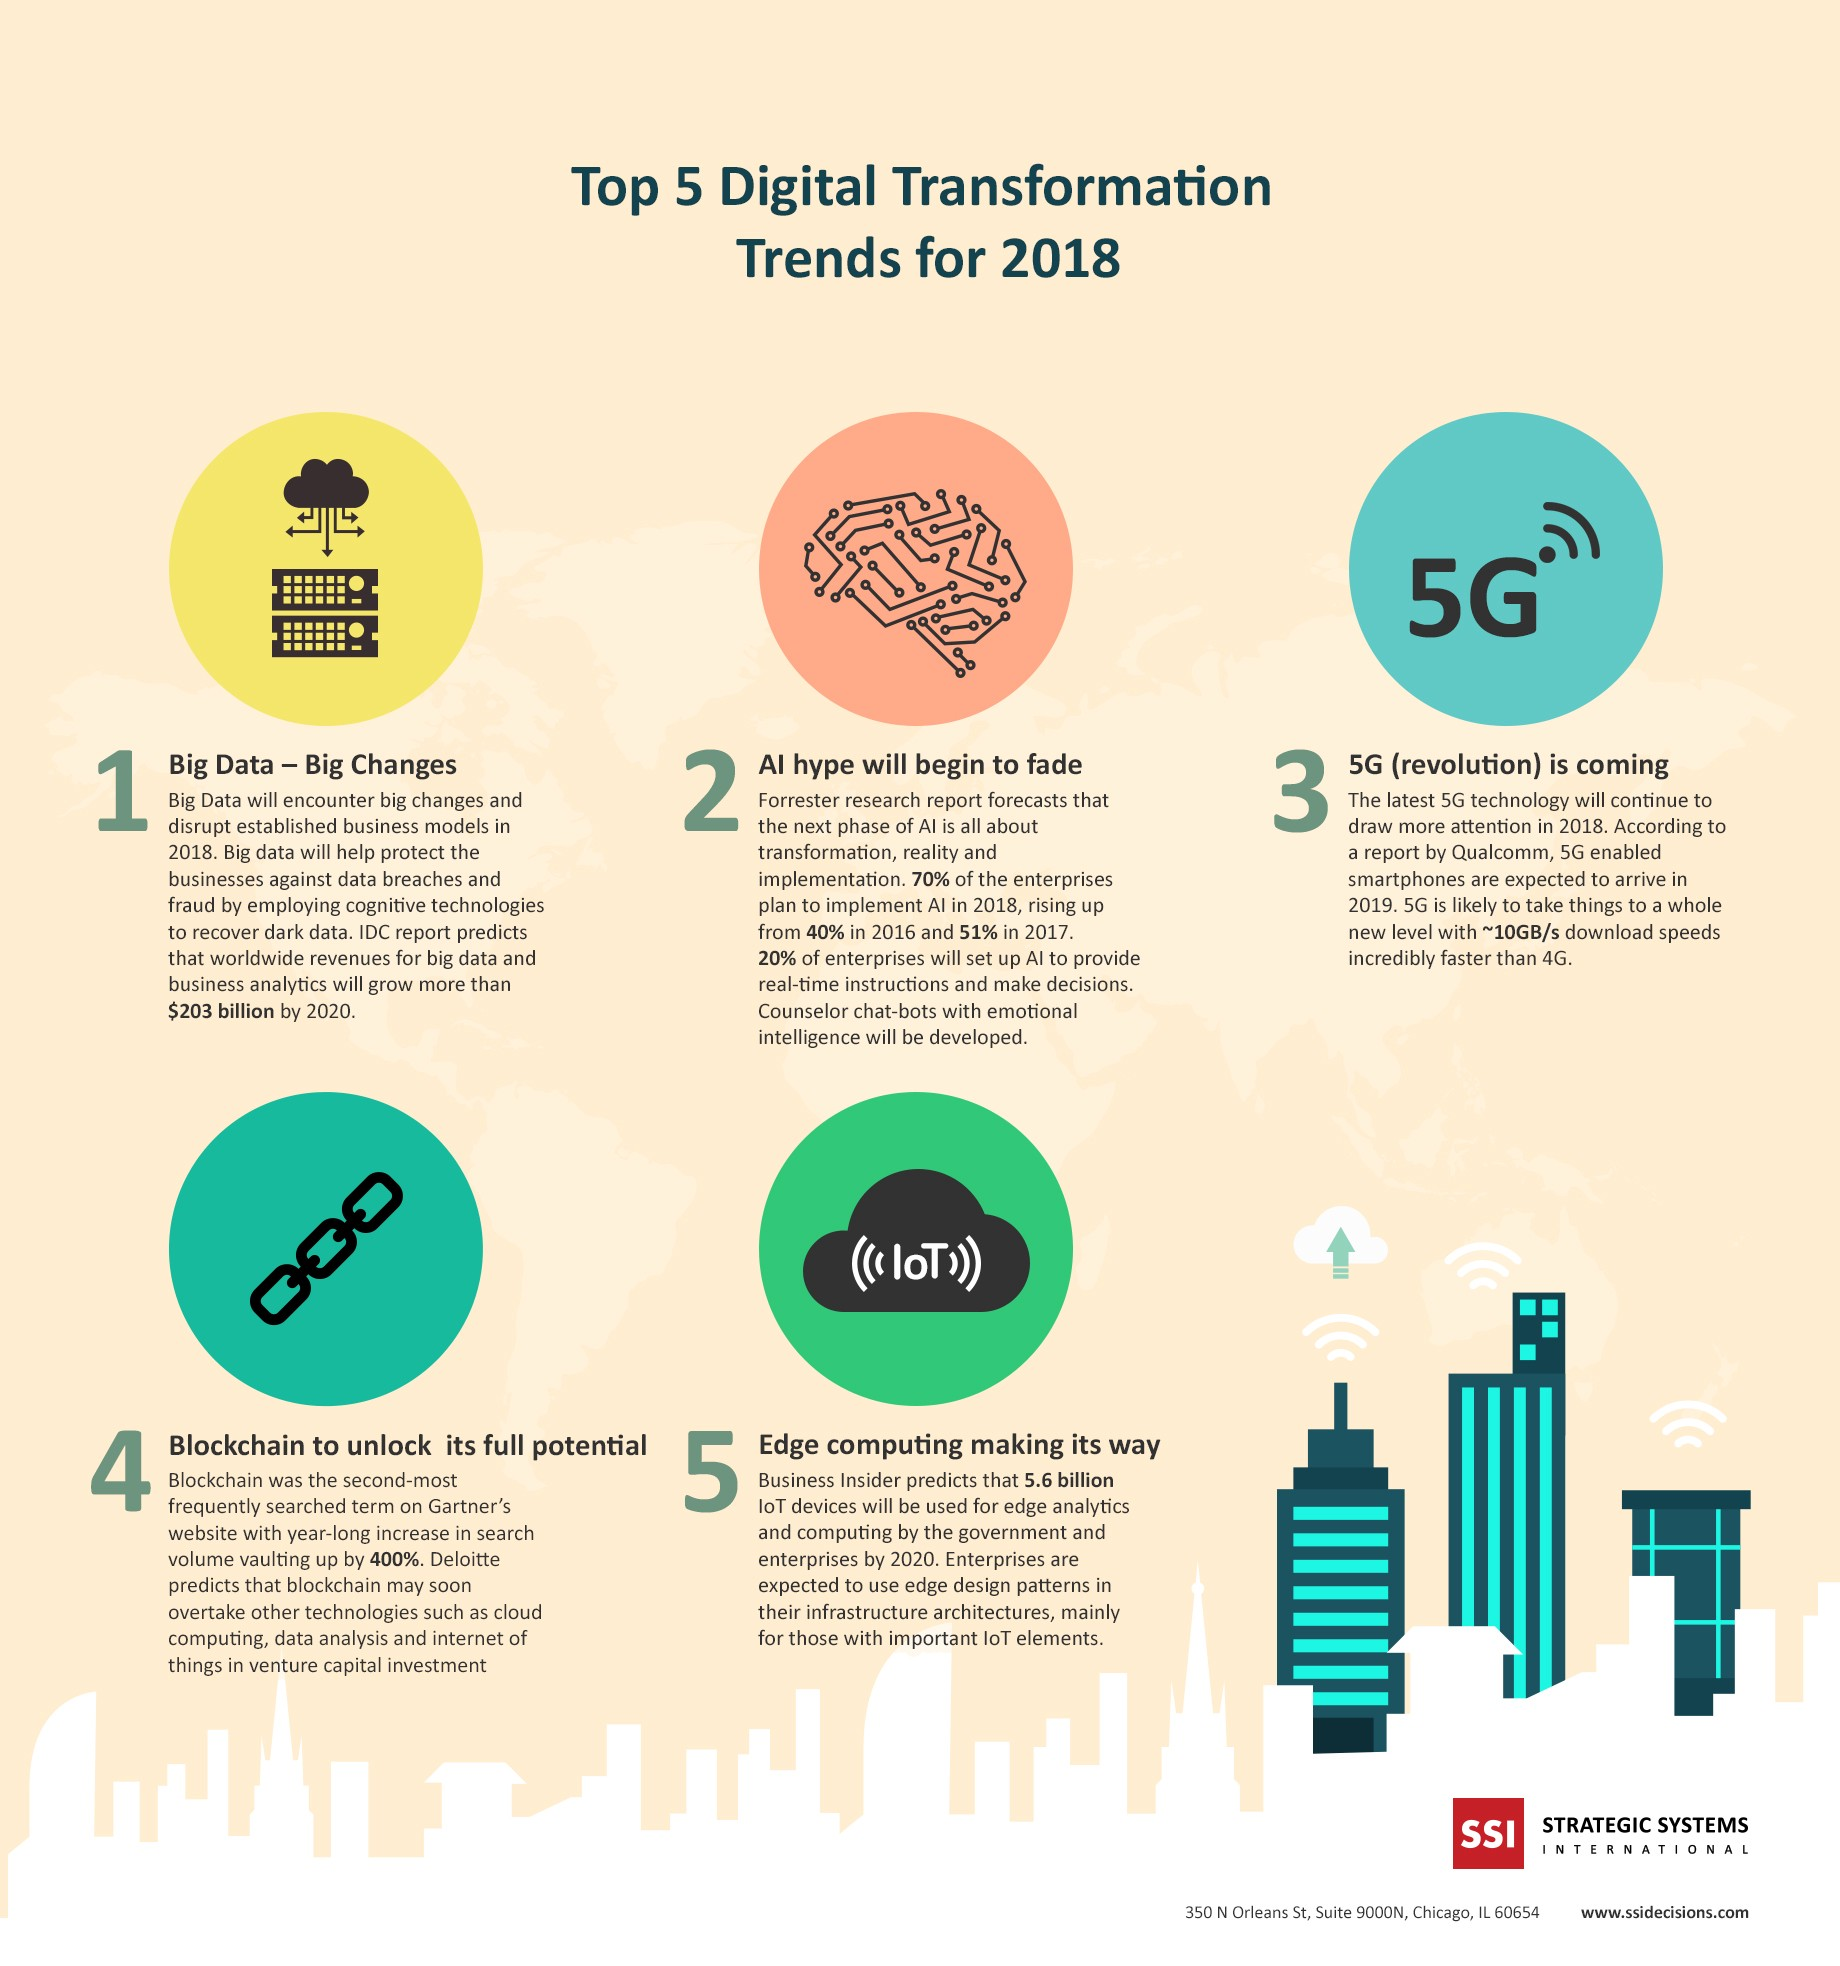 Top 5 Digital Transformation Trends For 2018 (Infographic